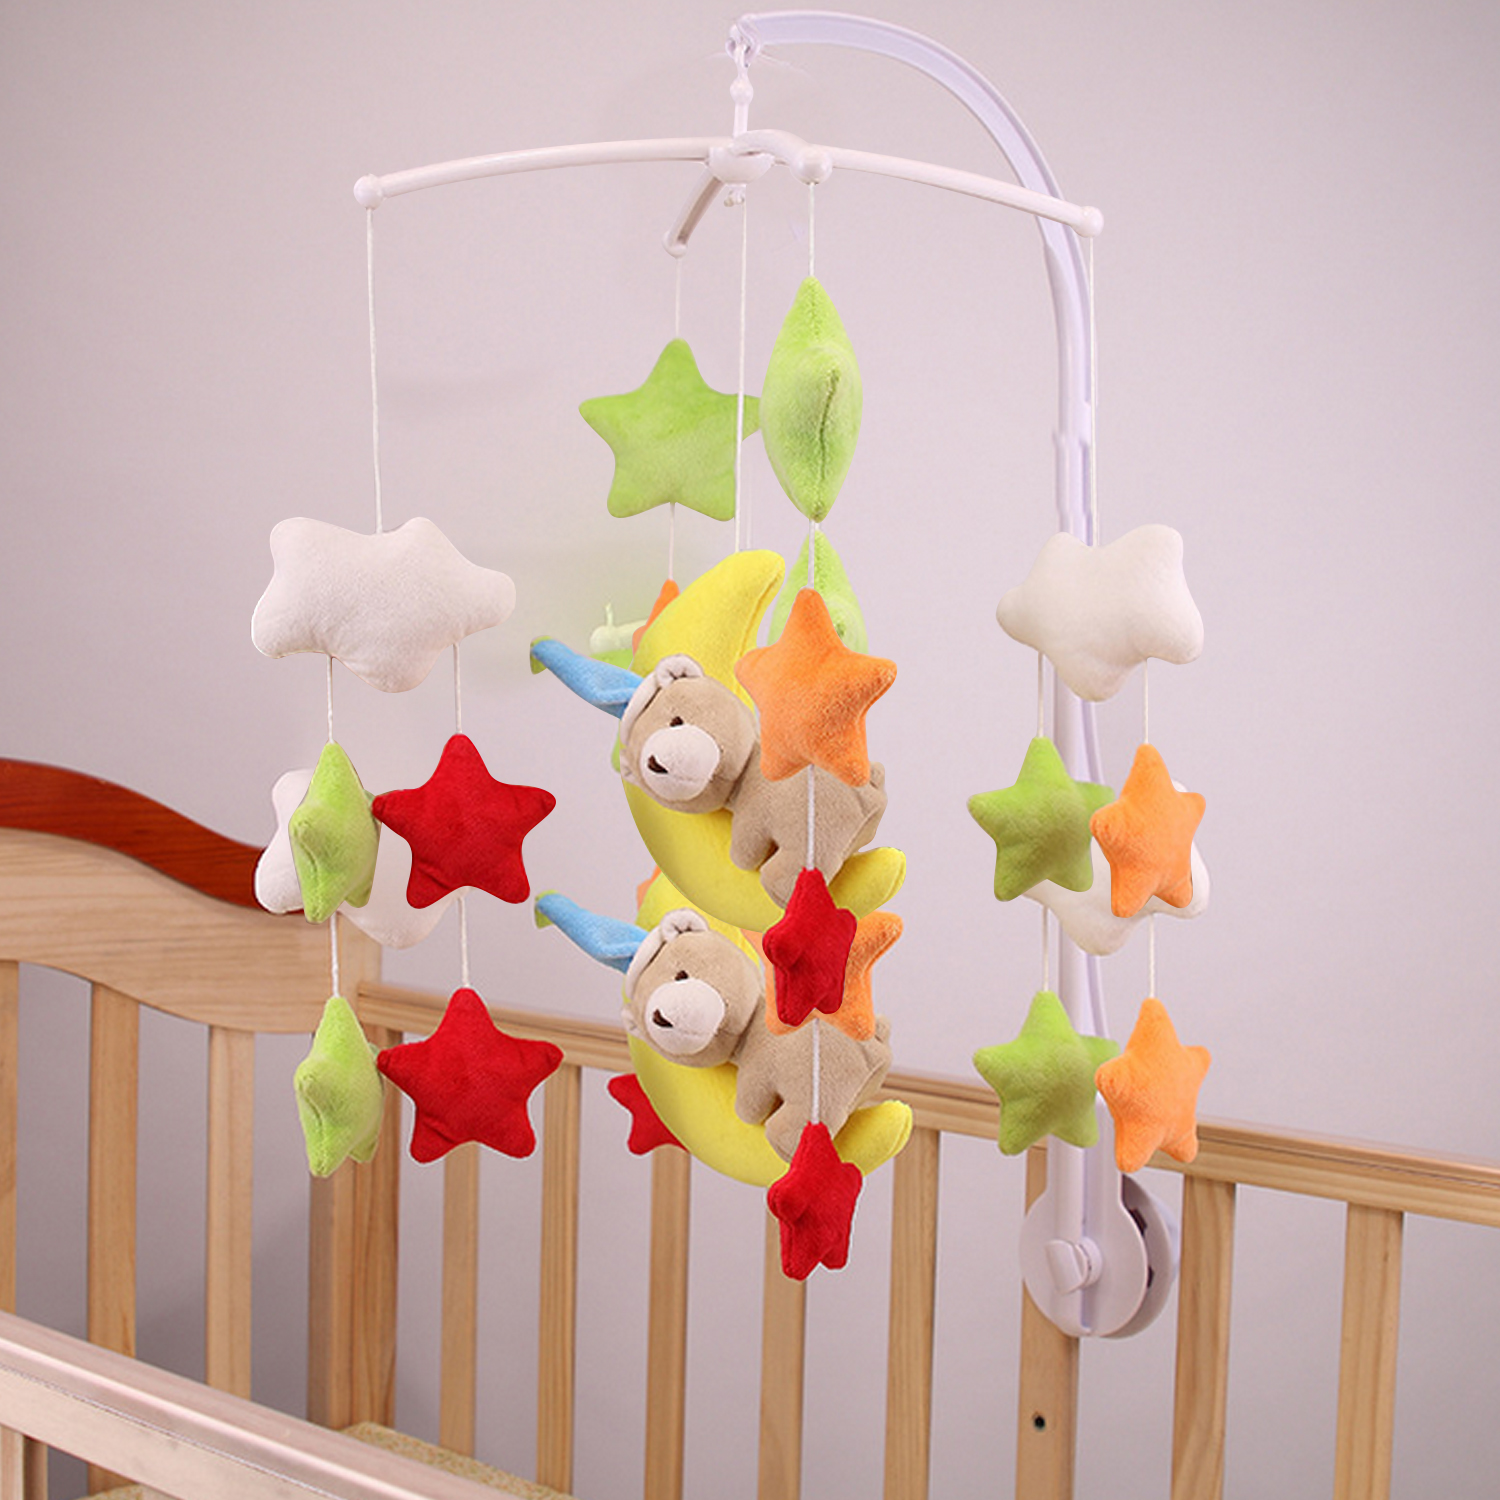 Infant Crib Cradle Mobile Bed Bell Music Box Holder Arm Bracket For Hanging Music Box Bell Toys Baby Bed Hanging Rattles Bracket